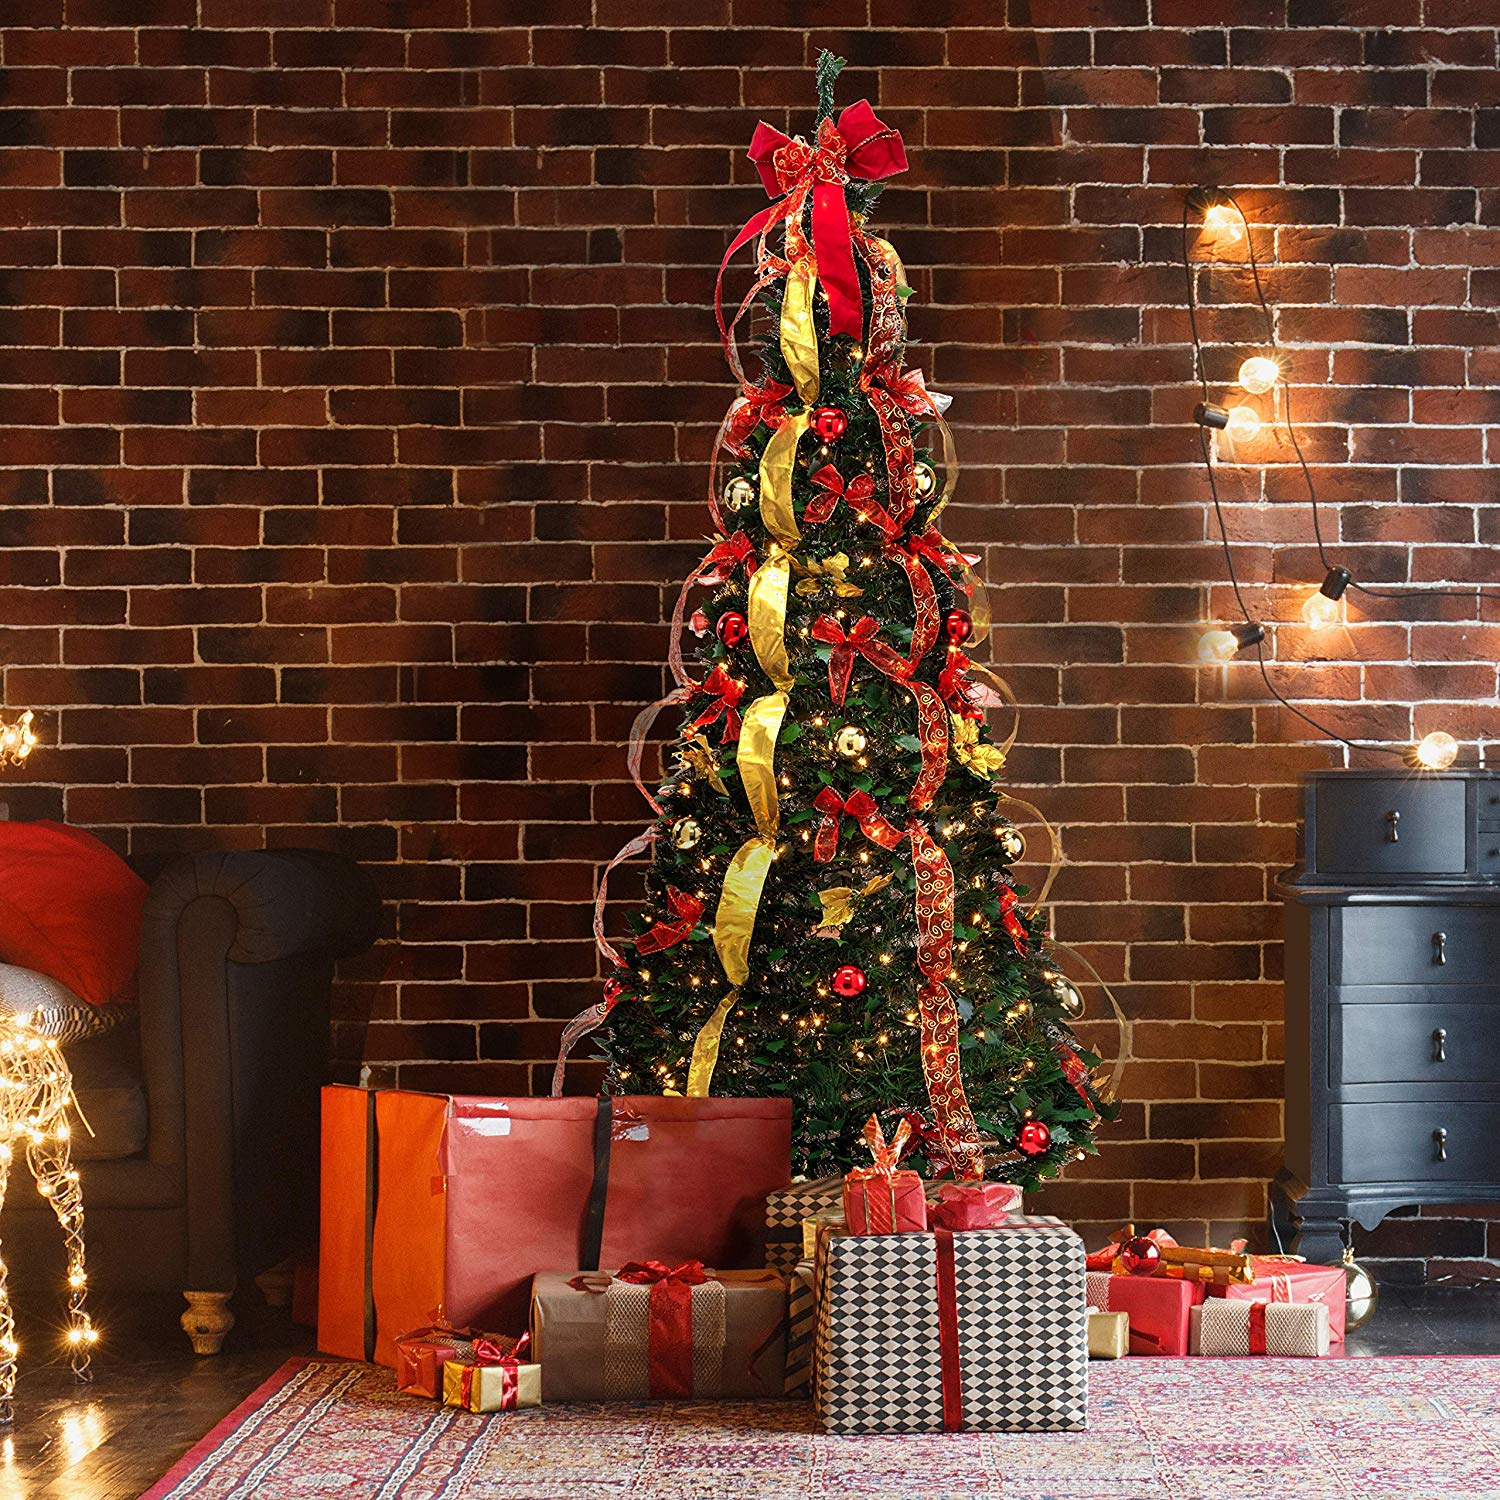 Instant Pop-Up Christmas Tree 4